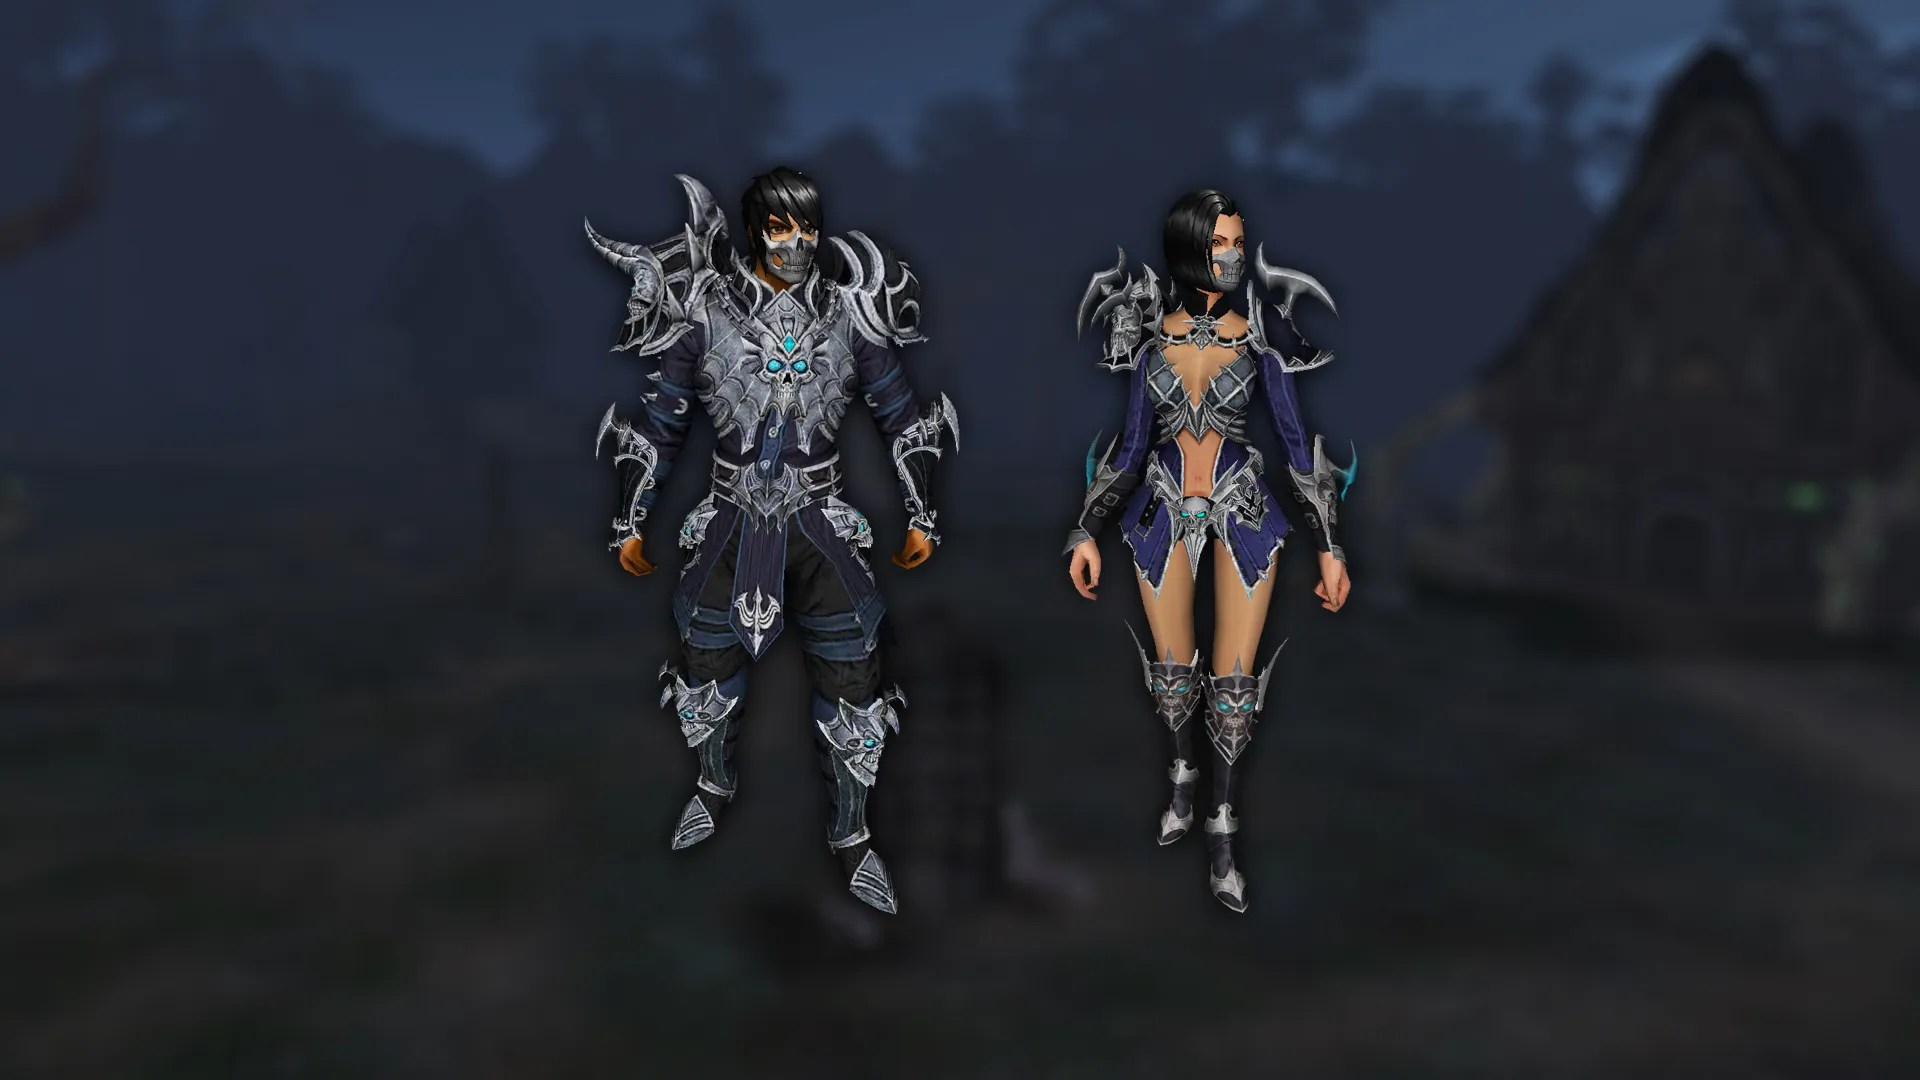 Armament of death knight